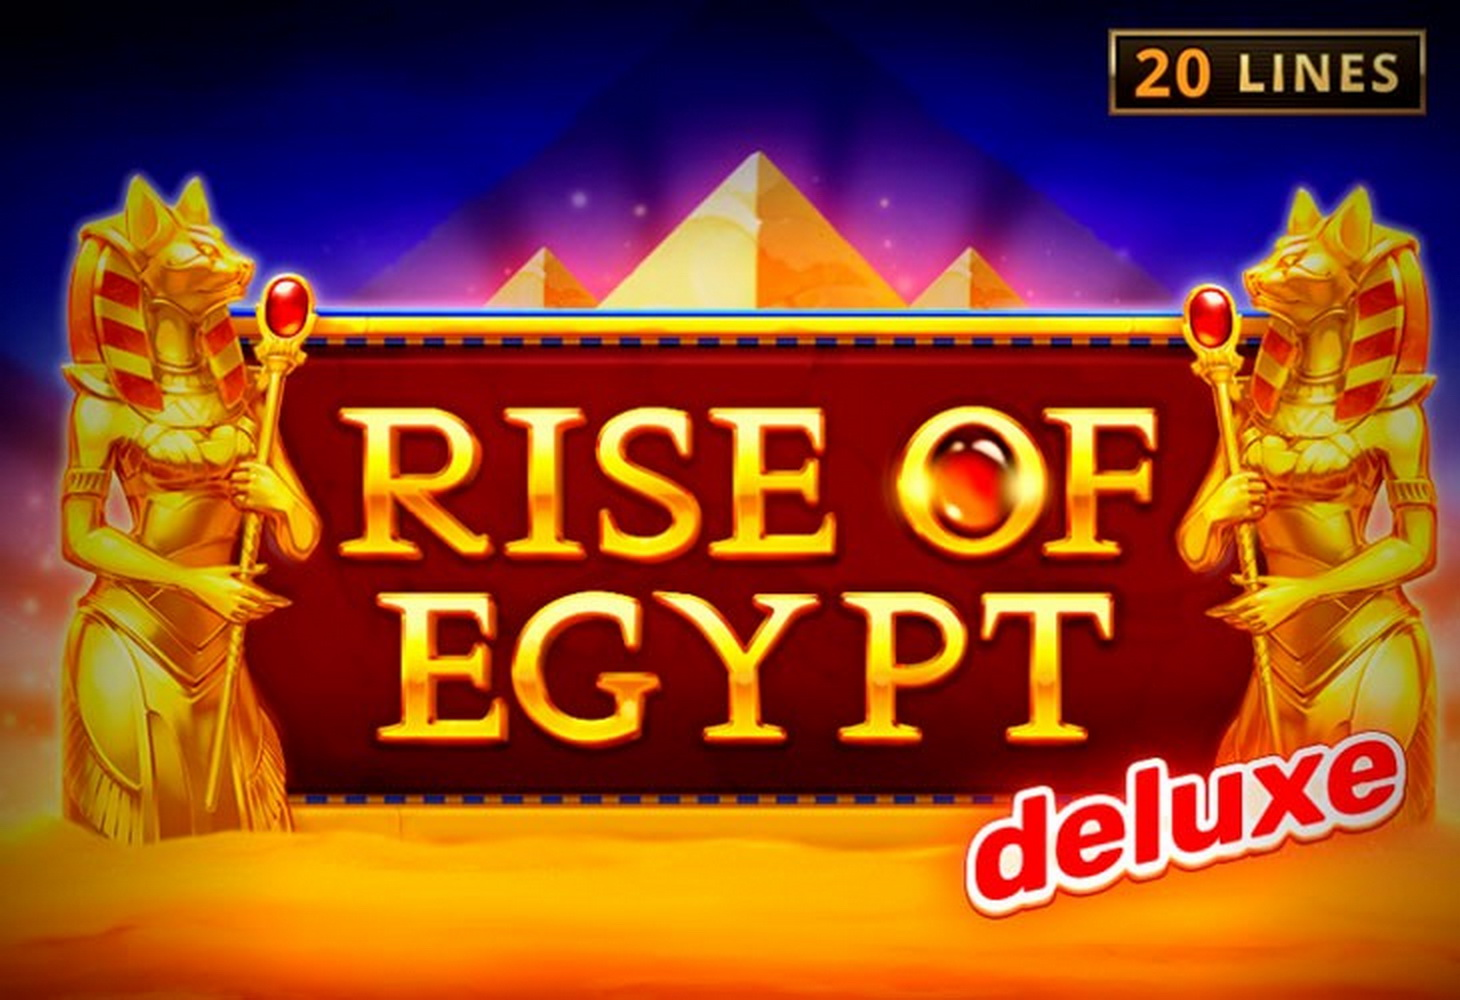 The Rise of Egypt Deluxe Online Slot Demo Game by Playson